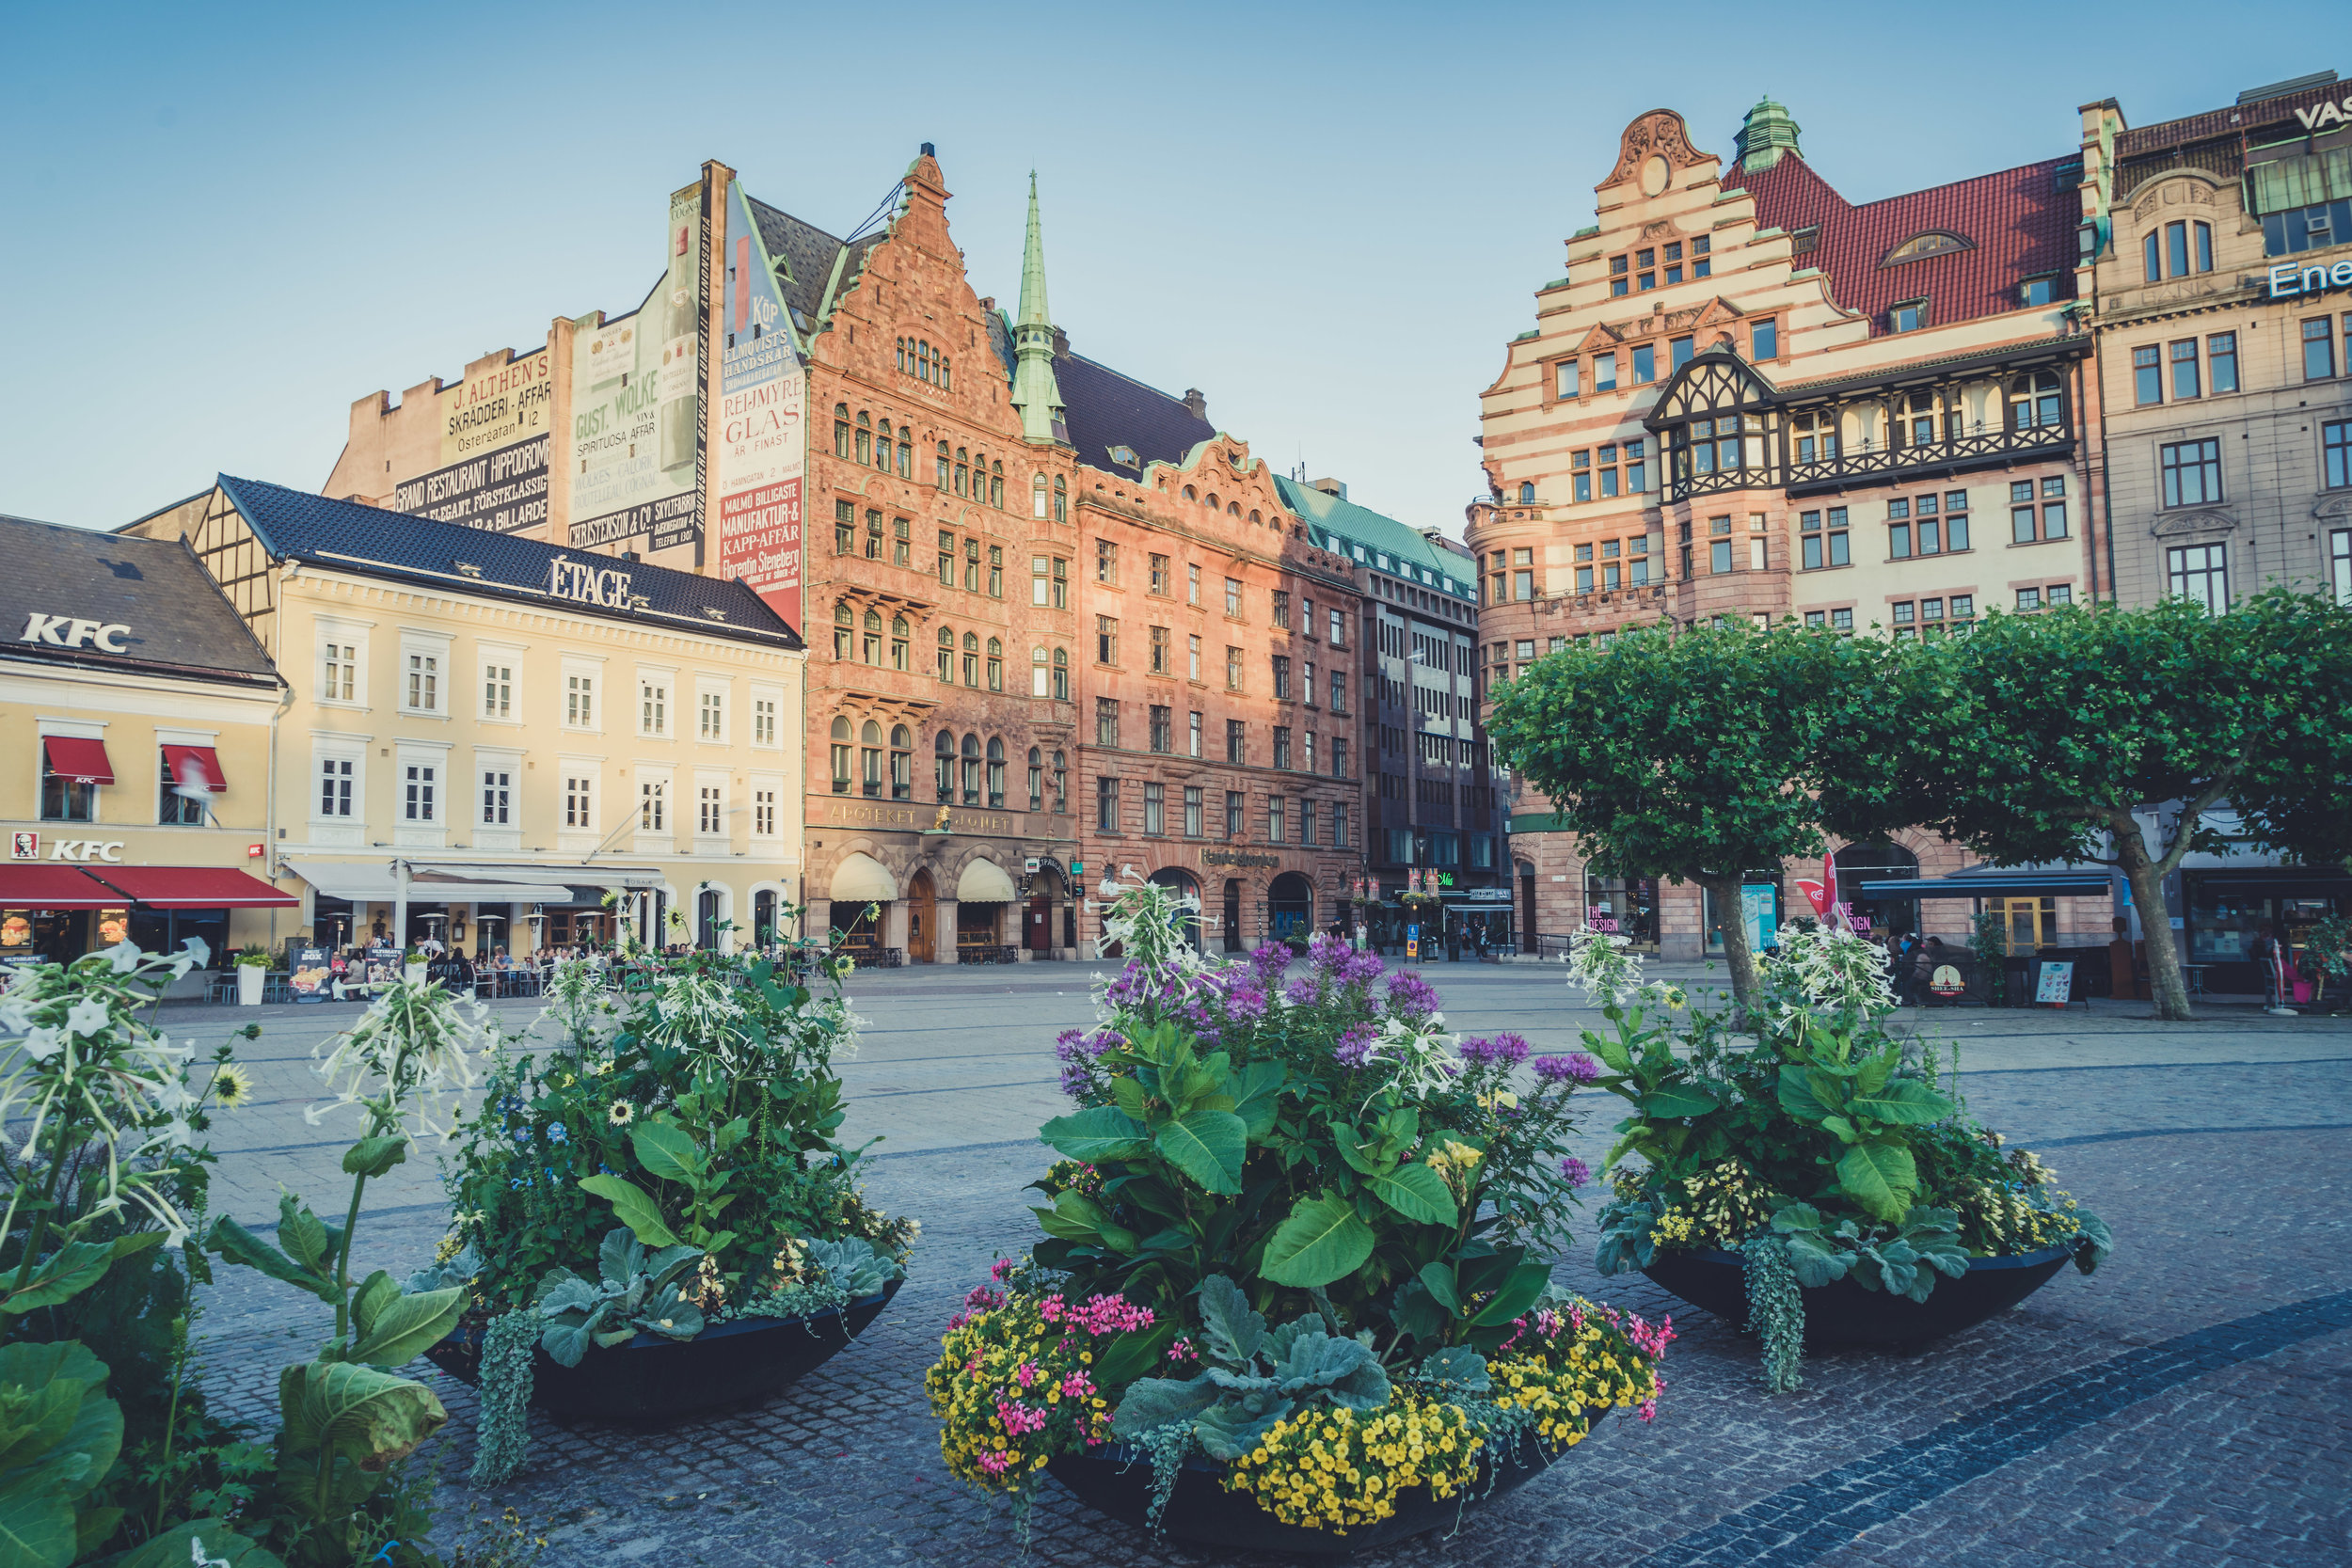 malmo. sweden. travel. scandinavia. history. viking. city. old. travel blog. palace. old town square palace. old buildings and flowers.jpg